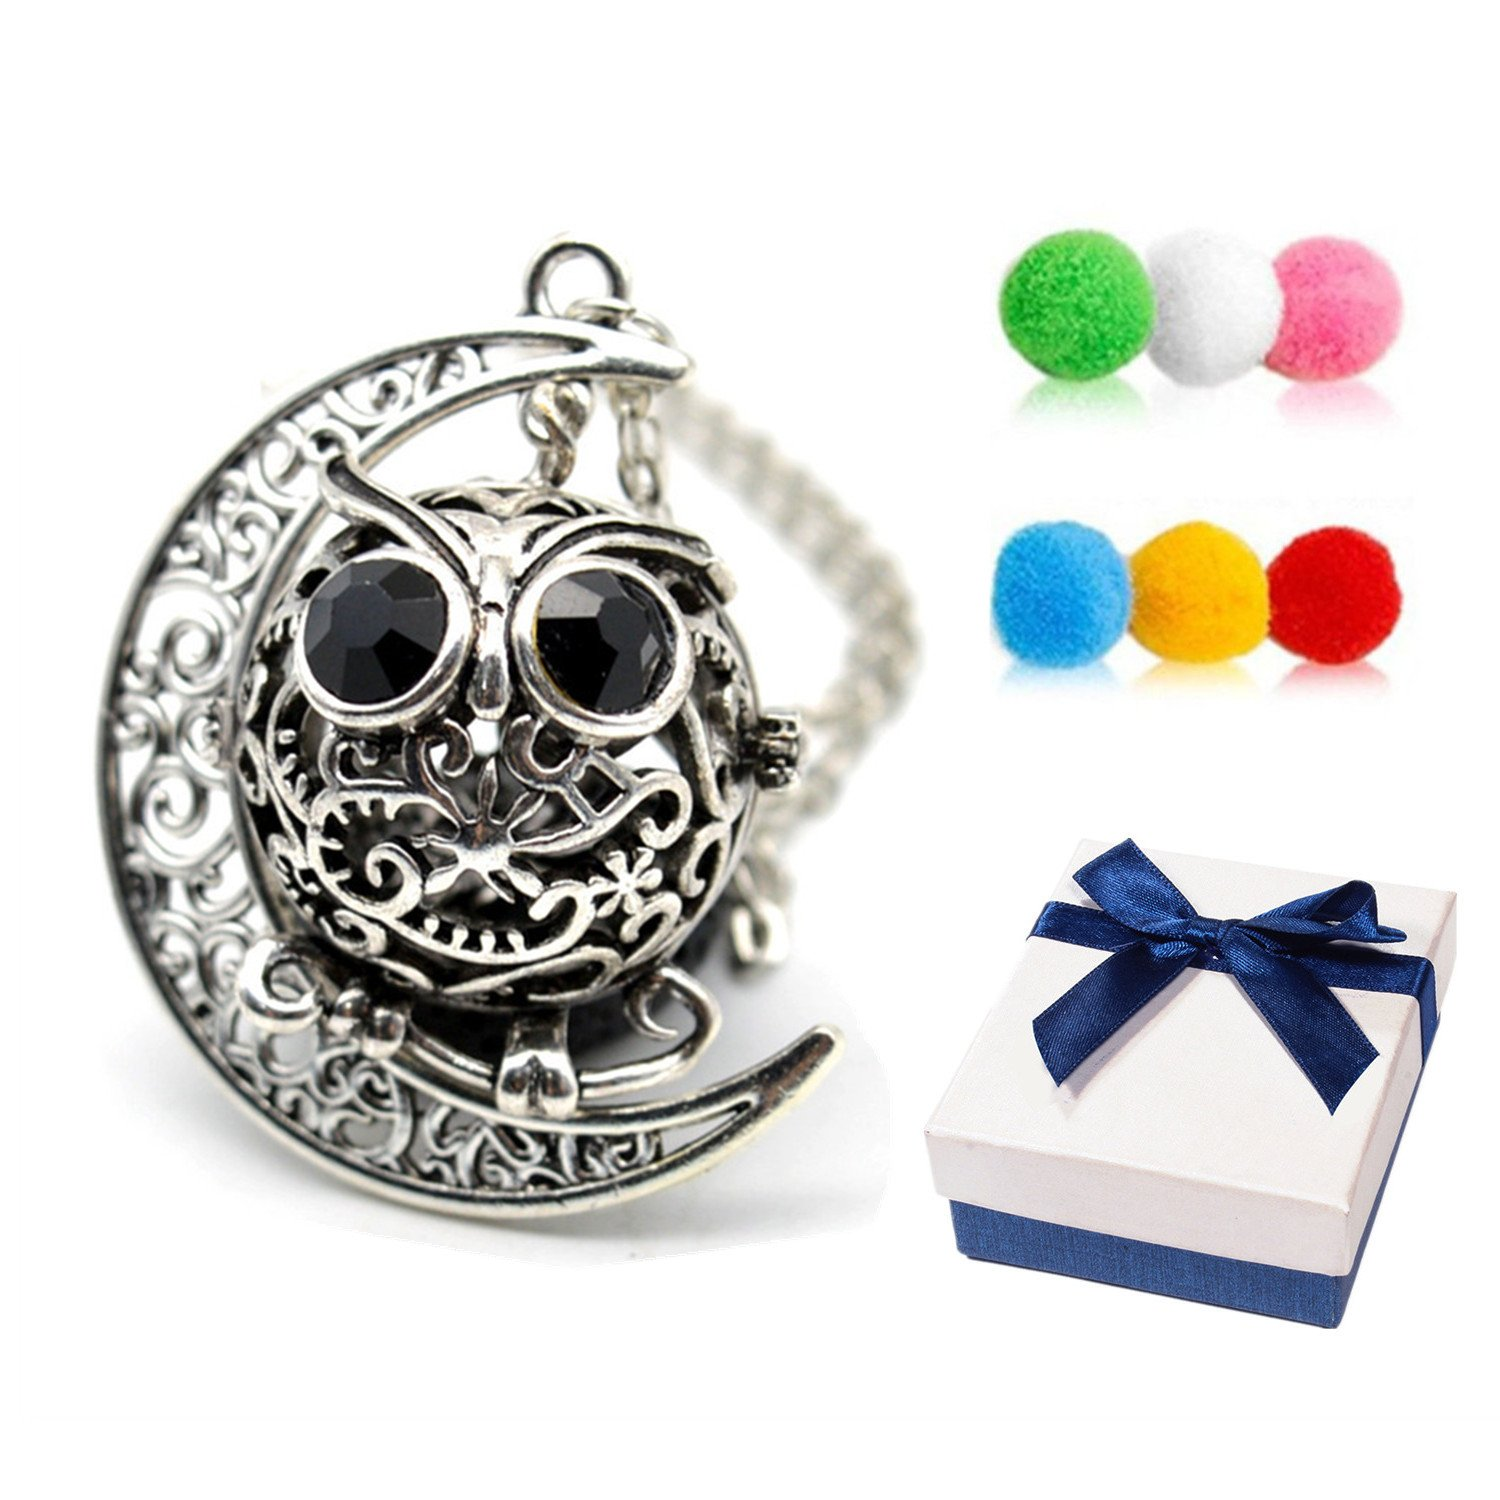 JJG Antique Silver Owl Locket Perfume Fragrance Necklace Aromatherapy Essential Oil Diffuser Pendant with Stainless Steel Chain 18'' (With Moon)